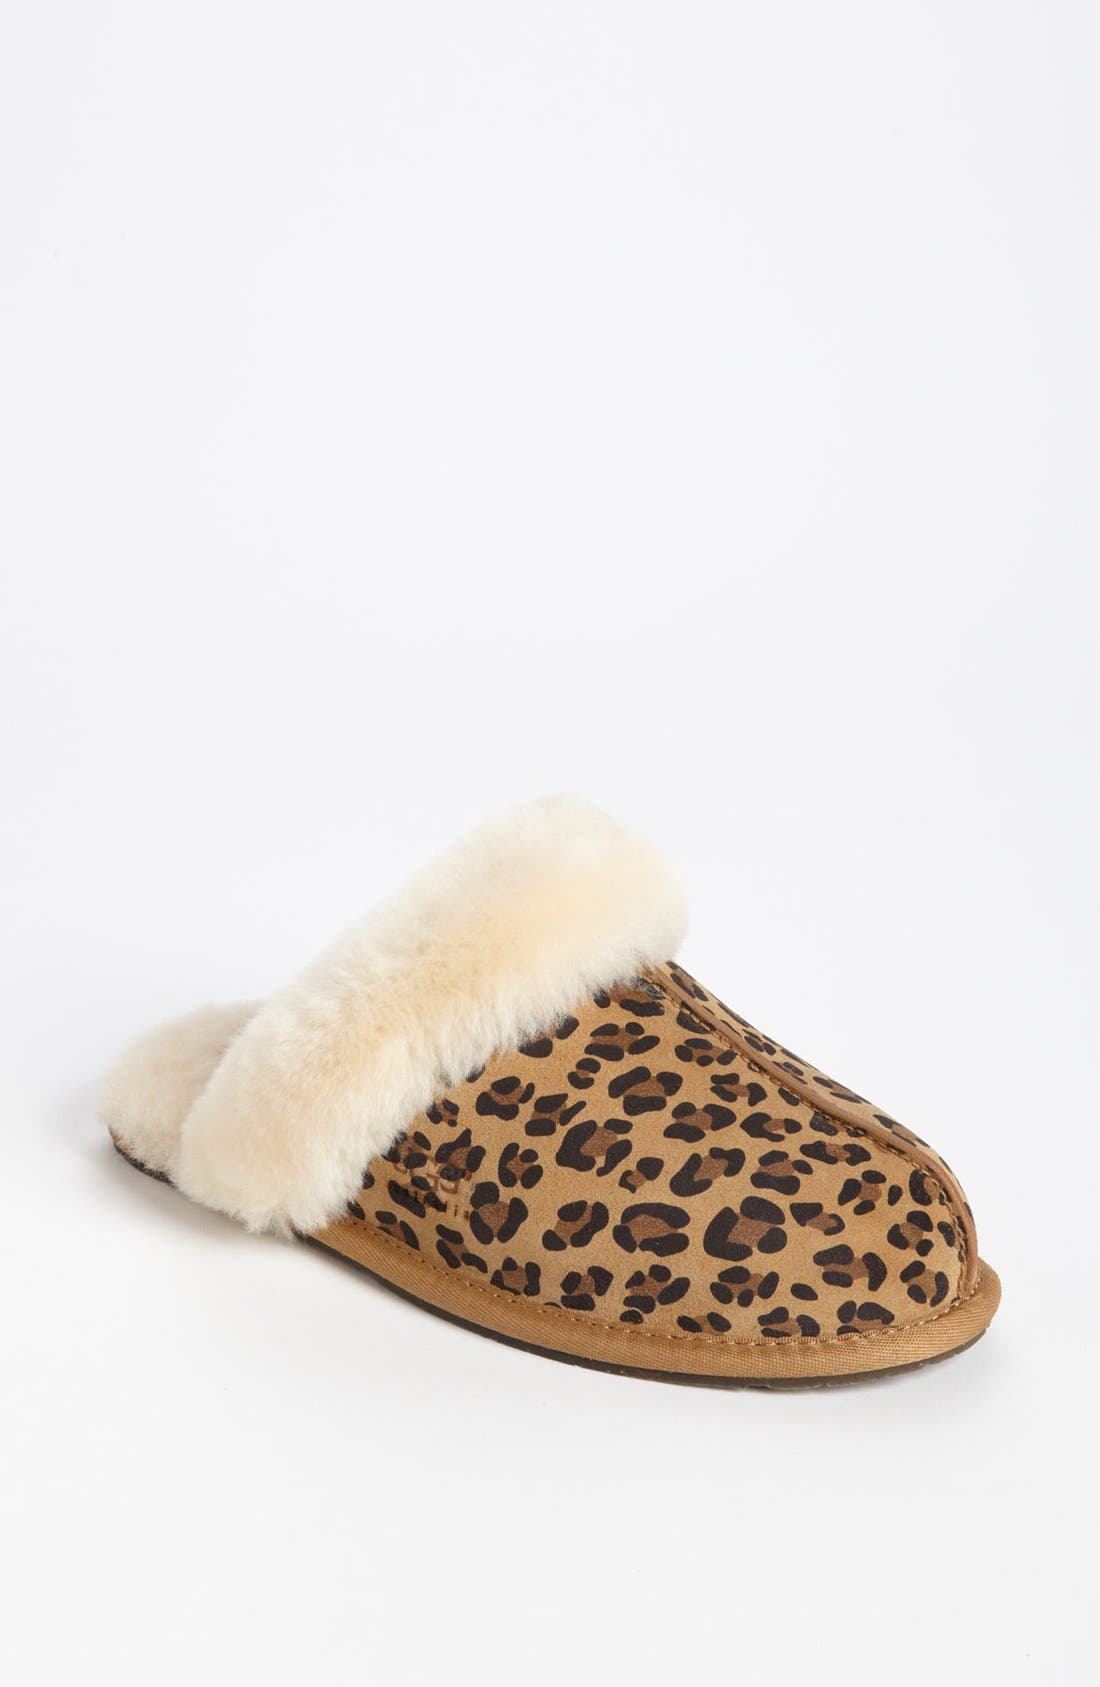 Alternate Image 1 Selected - UGG® Australia 'Scuffette II - Leopard' Slipper (Women)